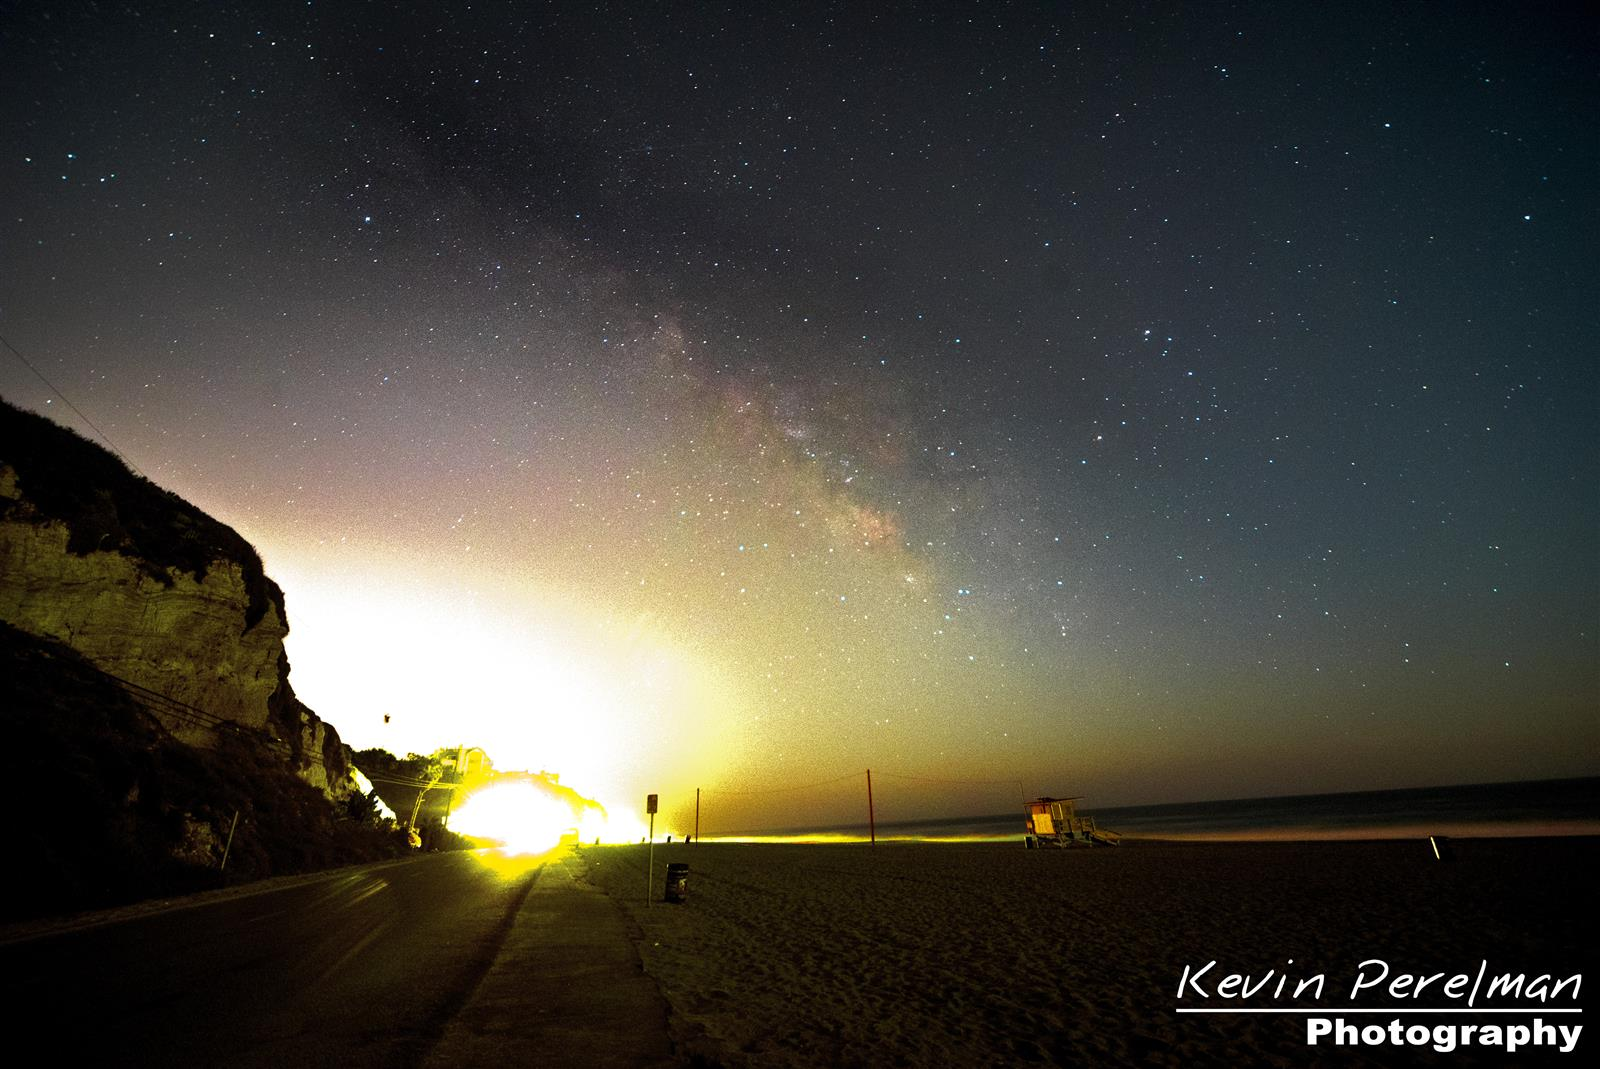 This is the Milkyway off point dume, in Malibu, ca